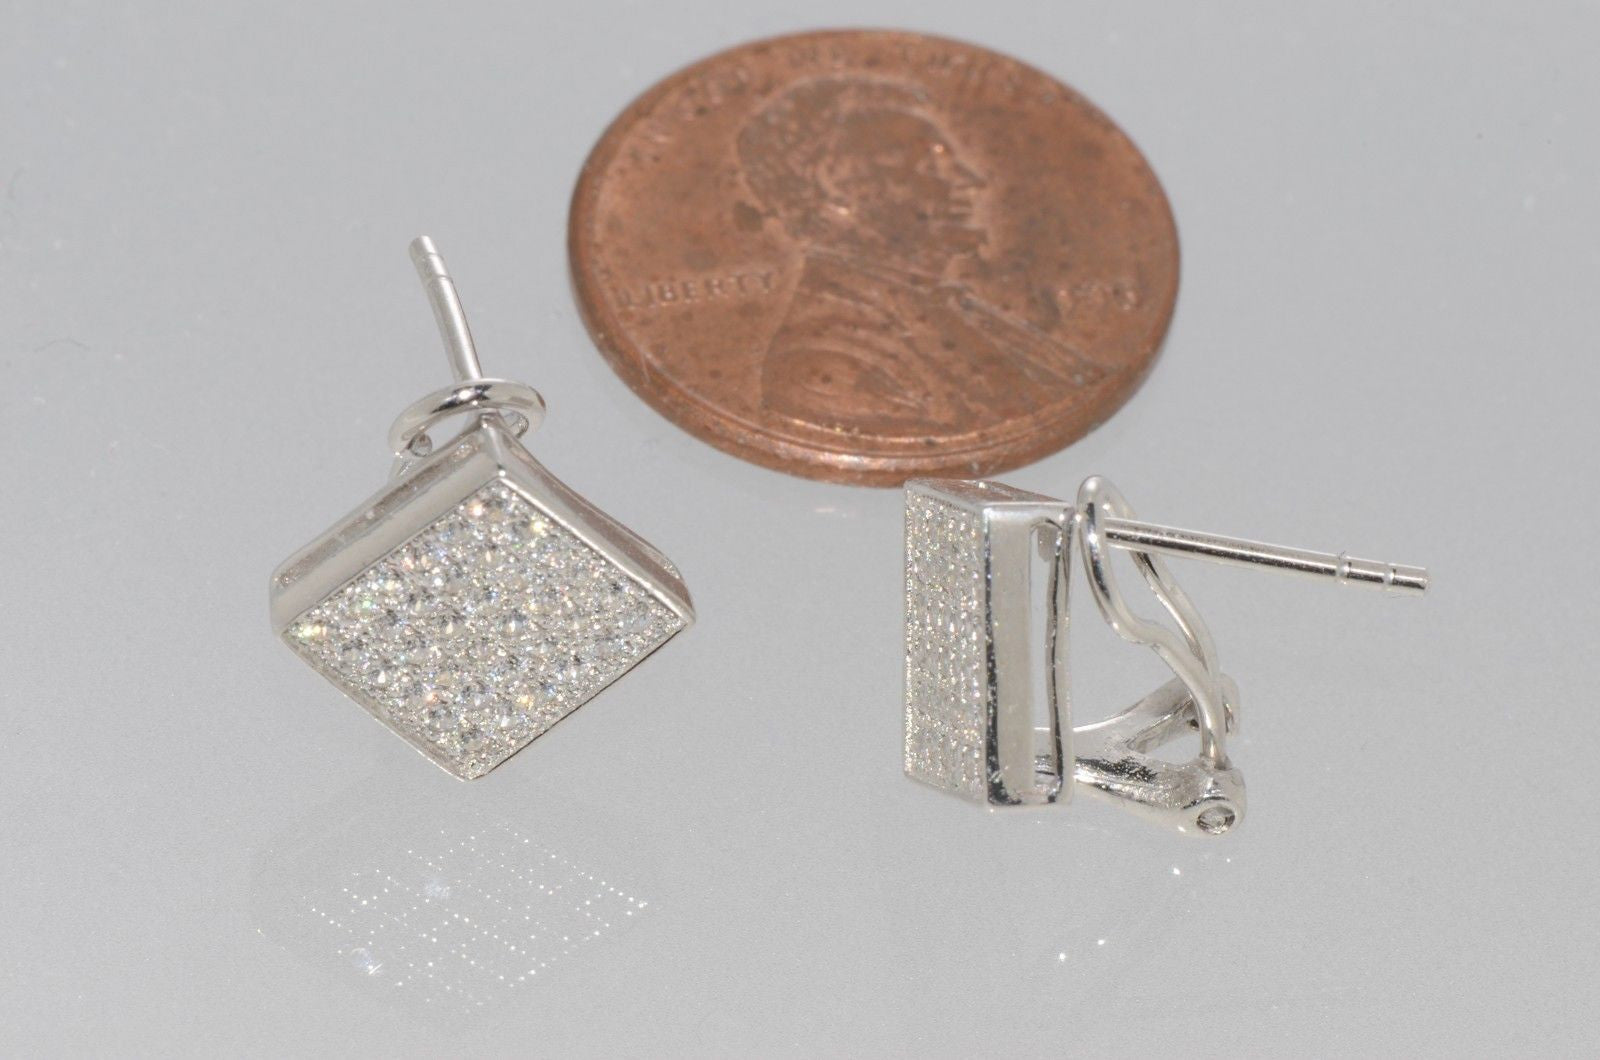 9.5 x 10 MM MSRP $159 Details about  /Sterling Silver CZ Square Post Earrings